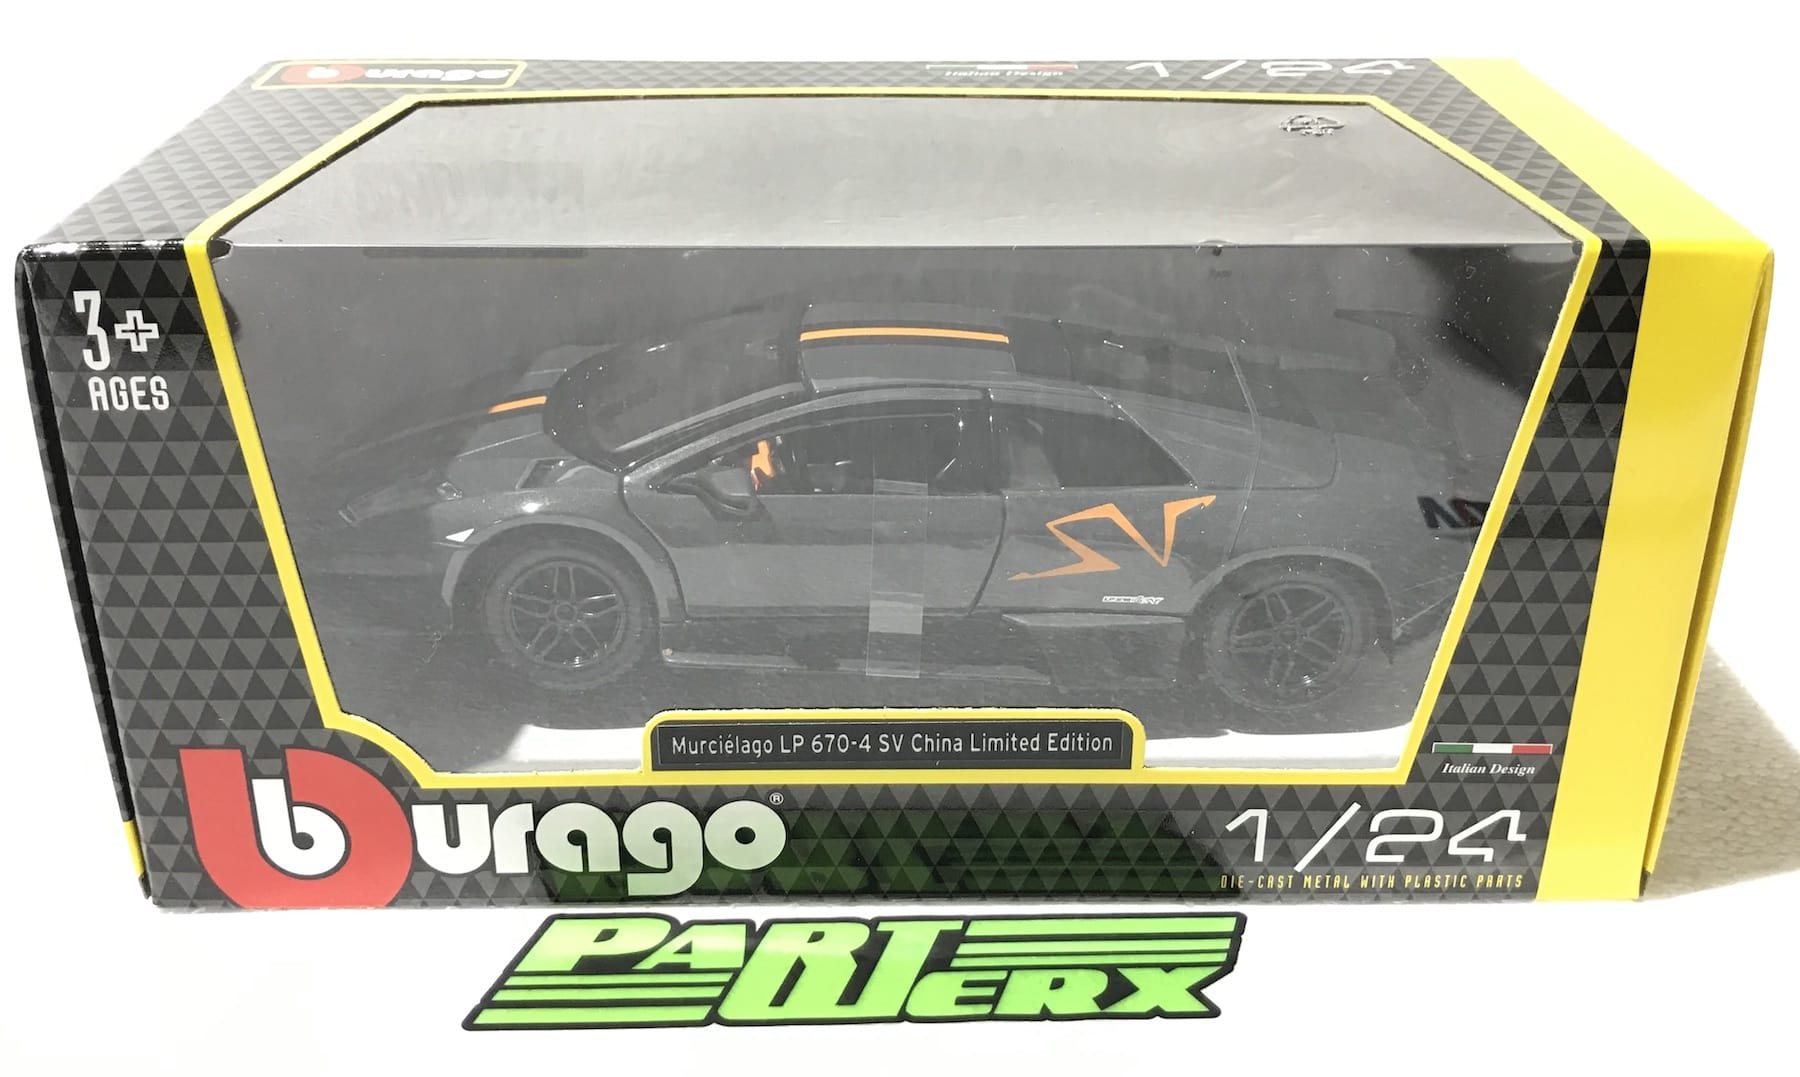 Lamborghini Murcielago LP-670-4 SV China Limited Edition 1:24 Scale Model Toy Childs Kids Enthusiasts Collectors Gift